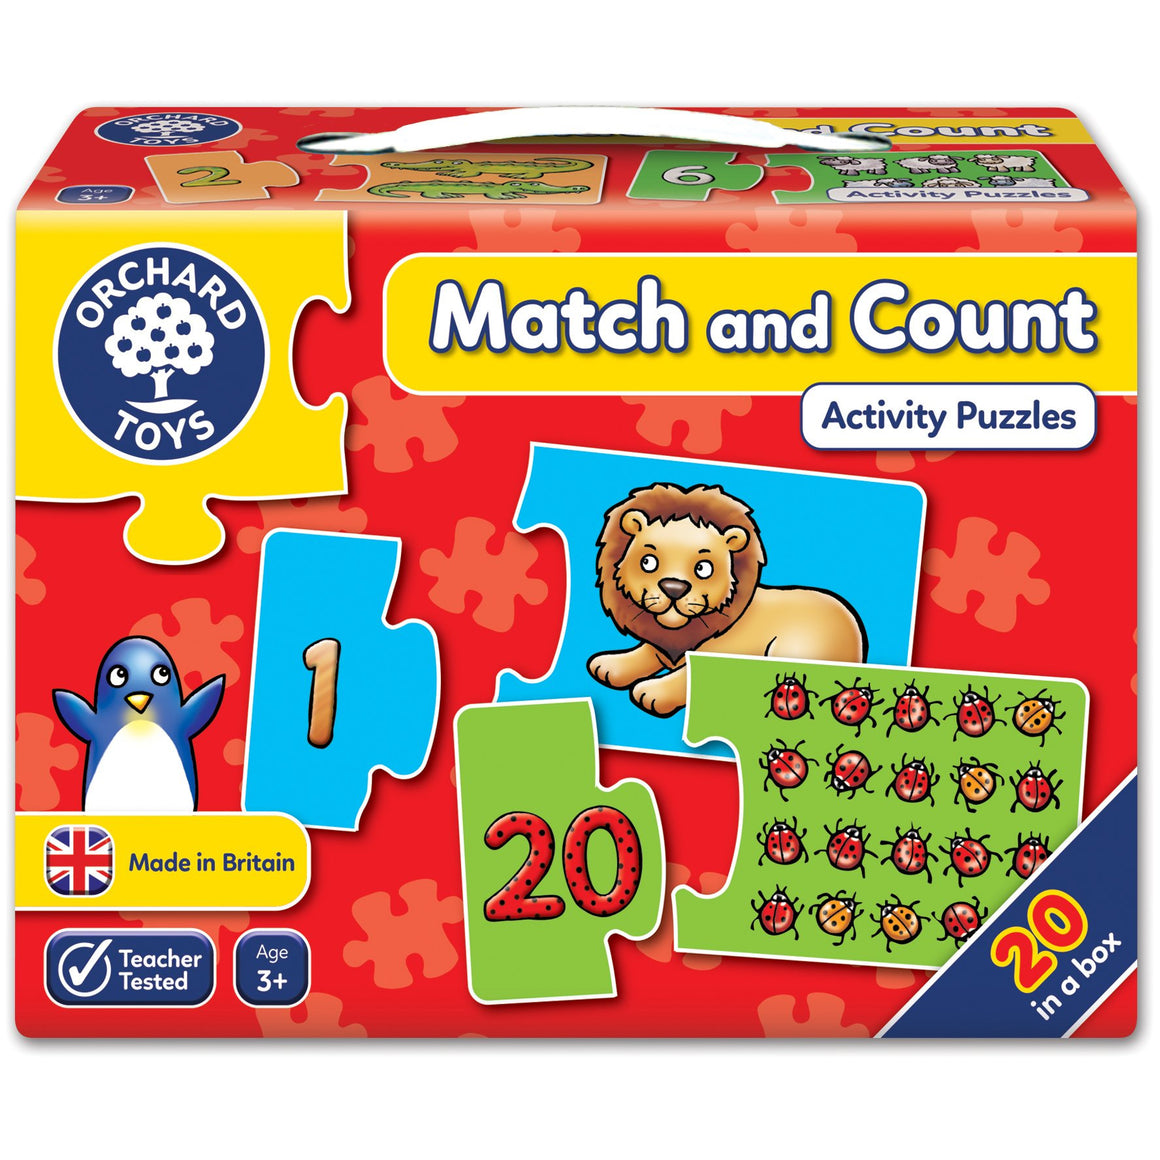 Match and count - The Tiny Toy Store